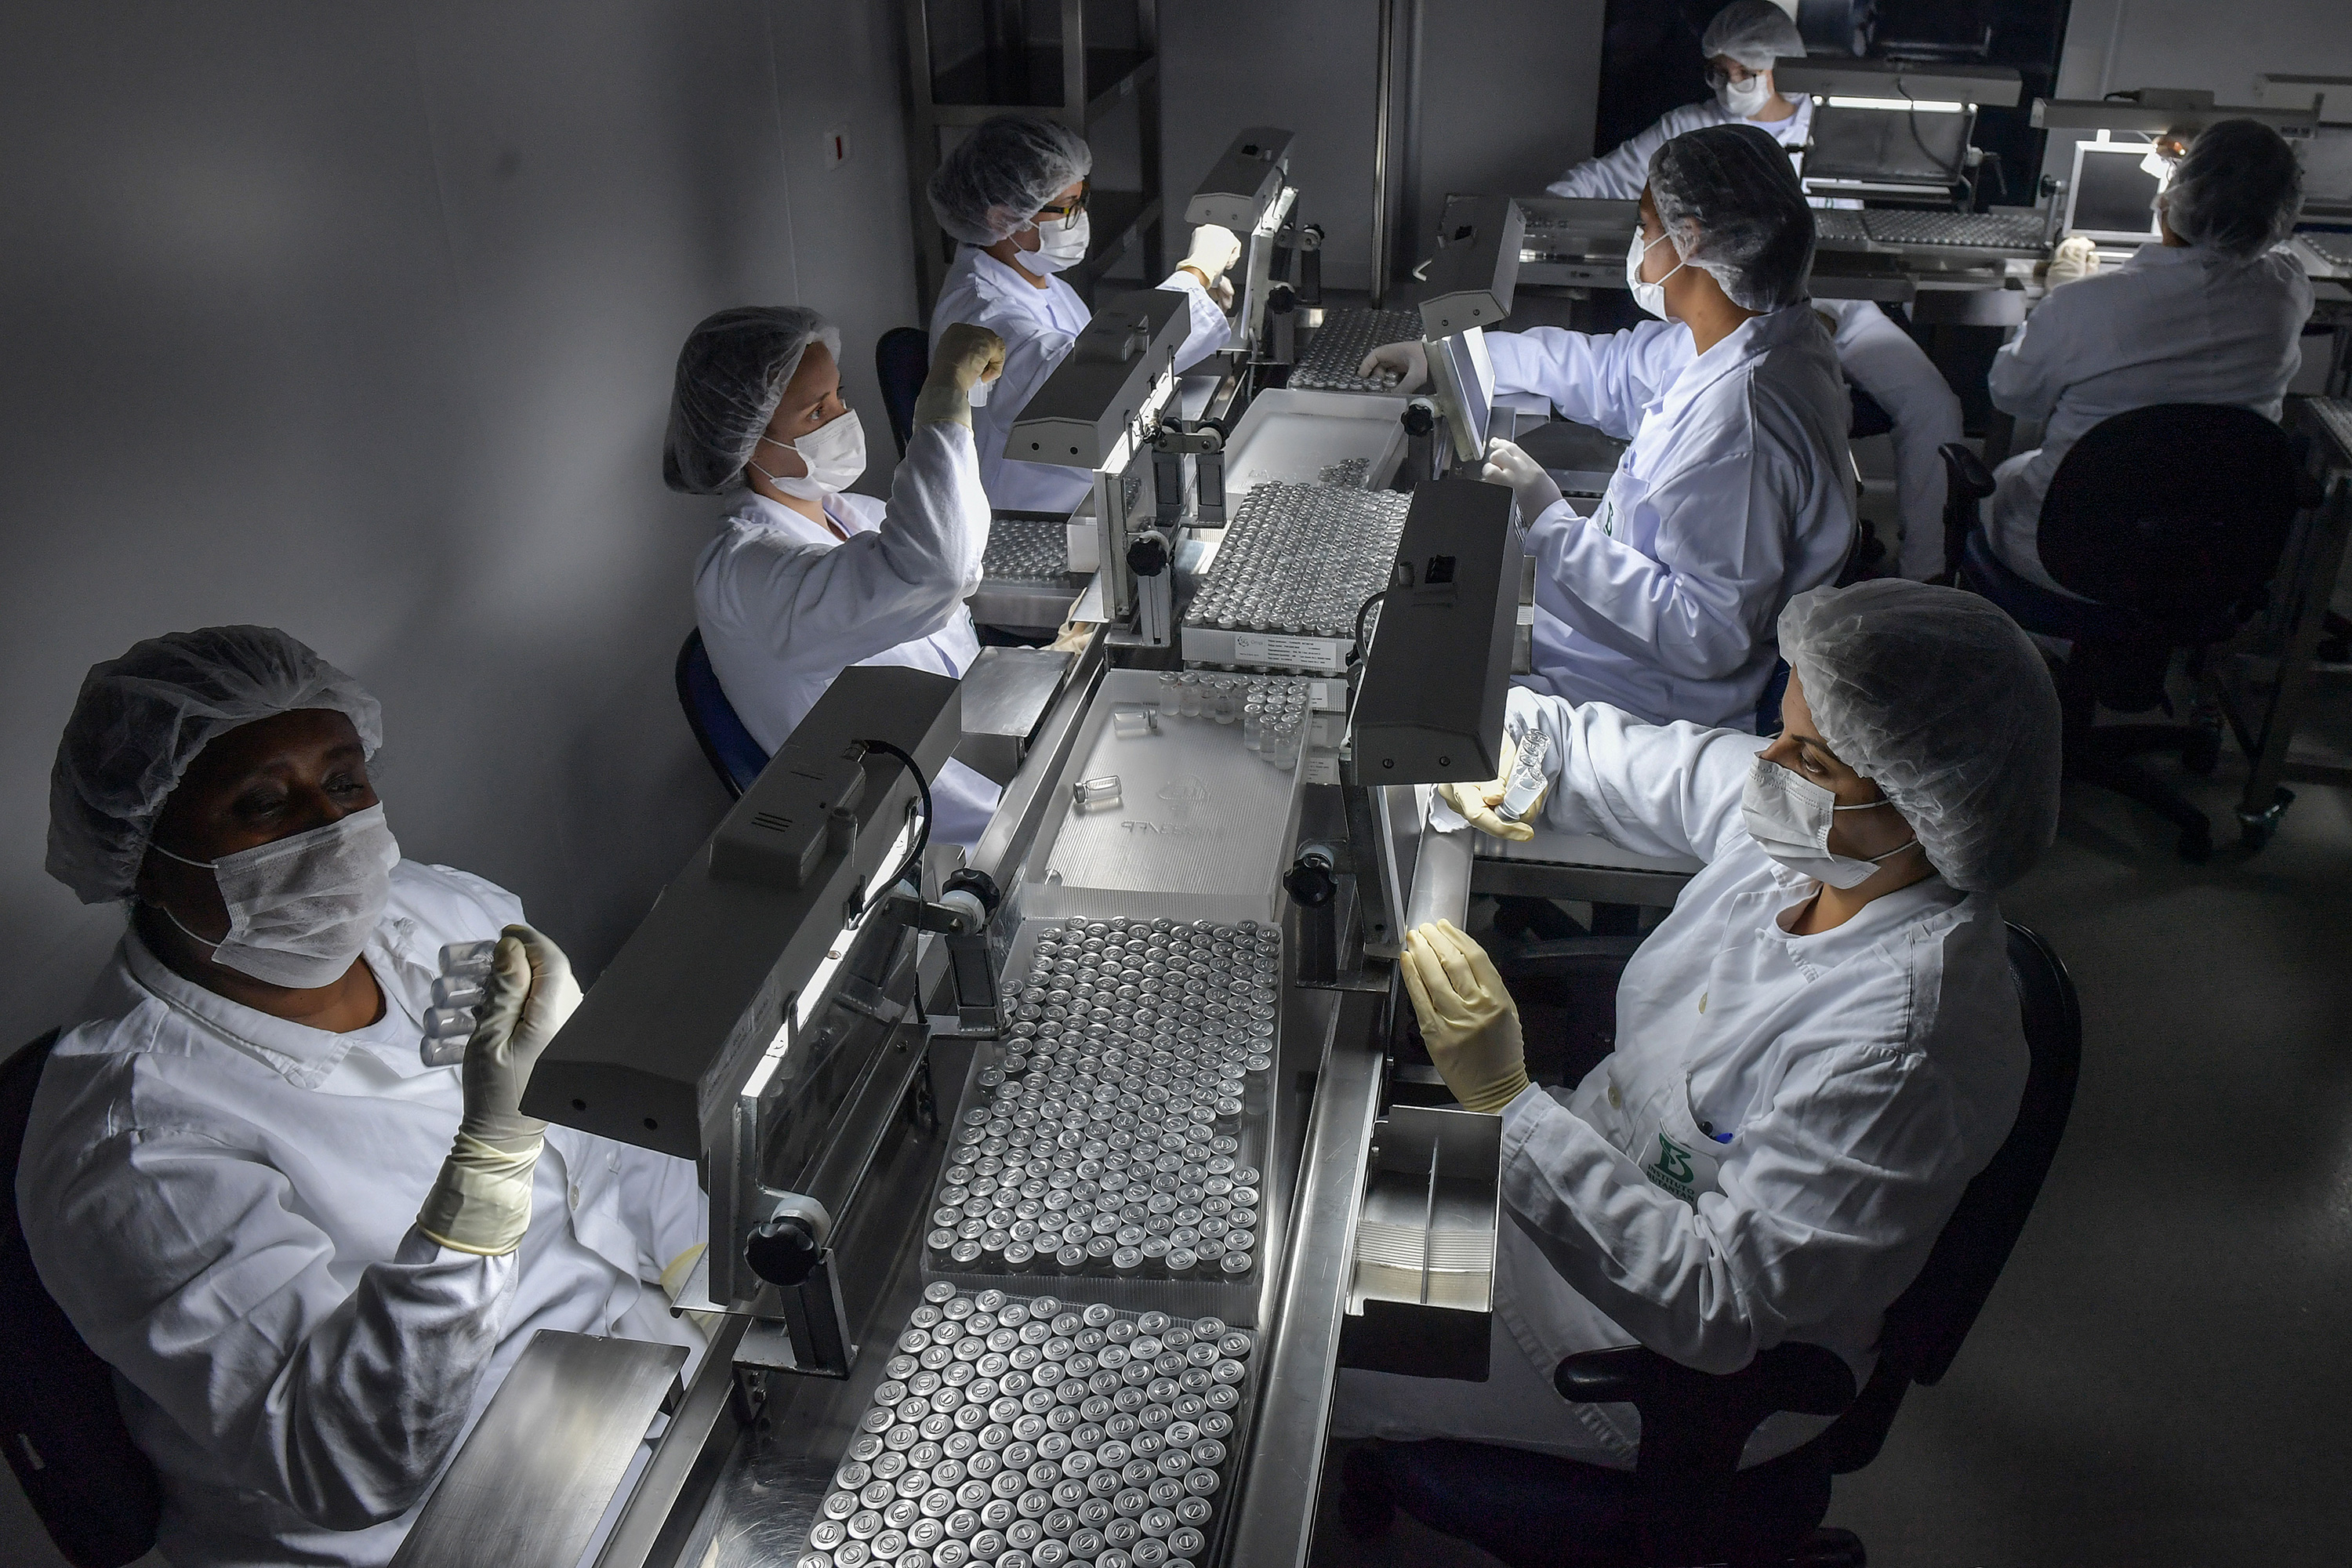 Staff prepare CoronaVac vaccines at the Butantan biomedical production center, in São Paulo, Brazil, on January 14.